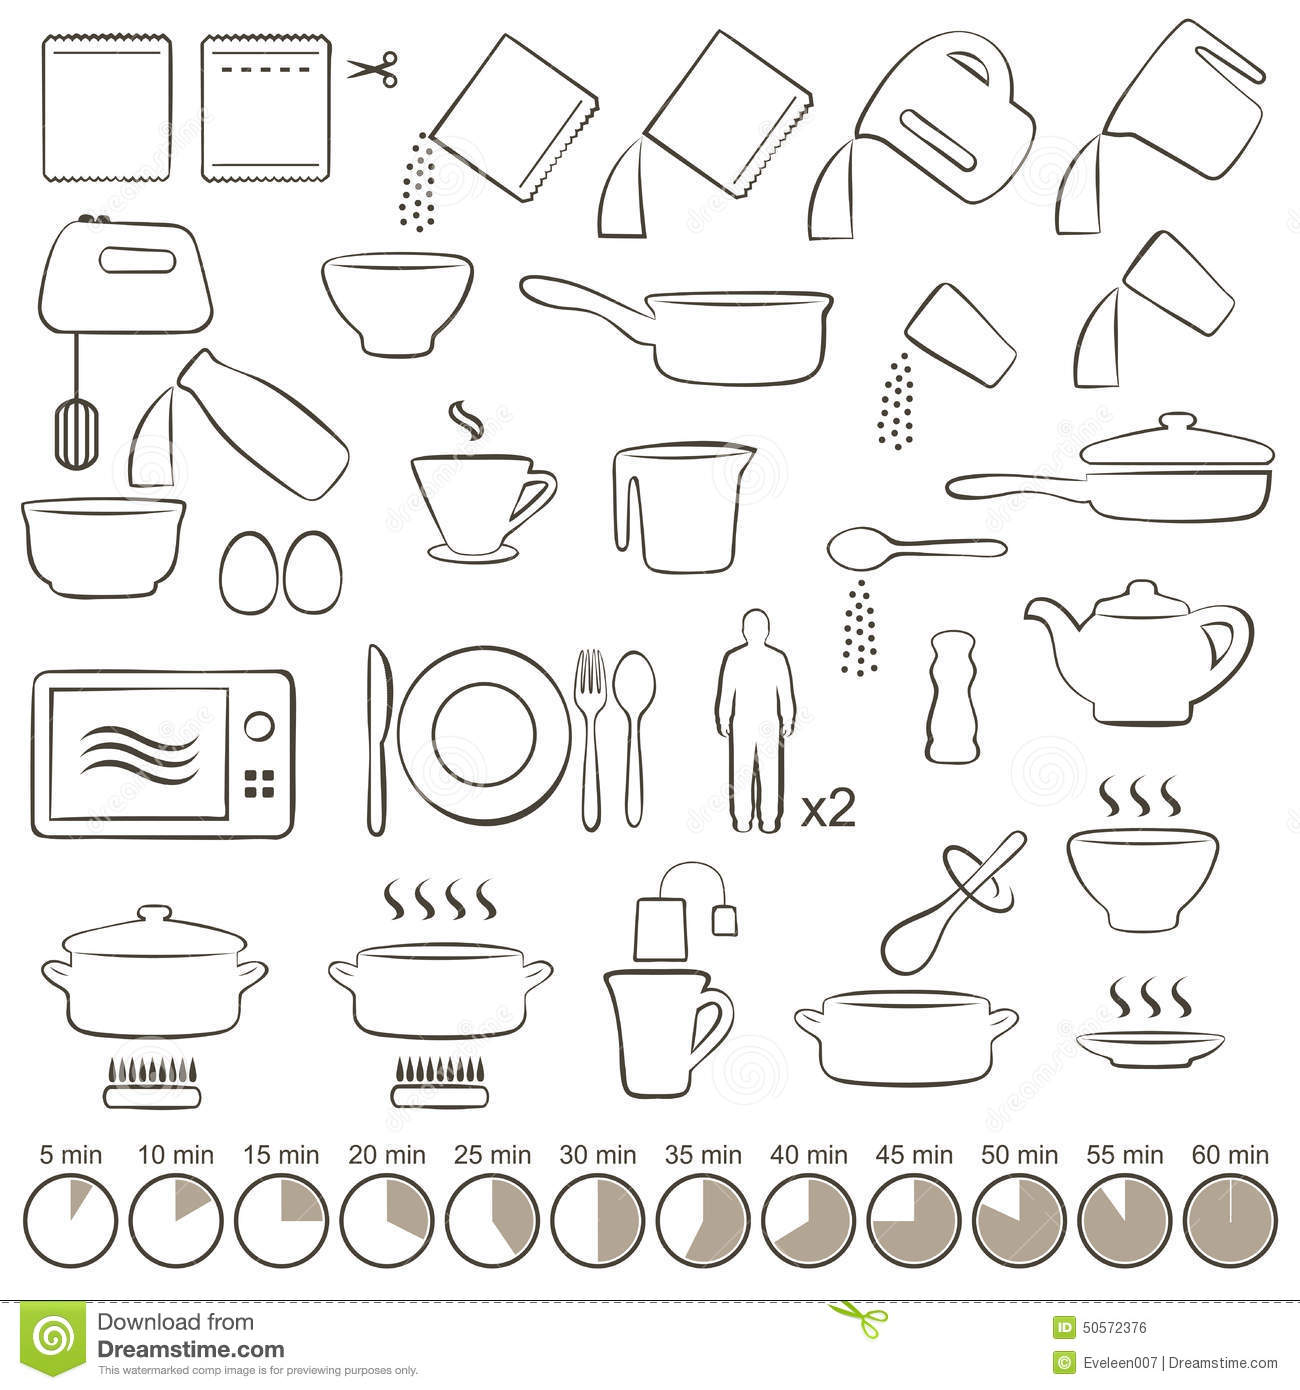 Icons cooking stock vector. Illustration of instruction